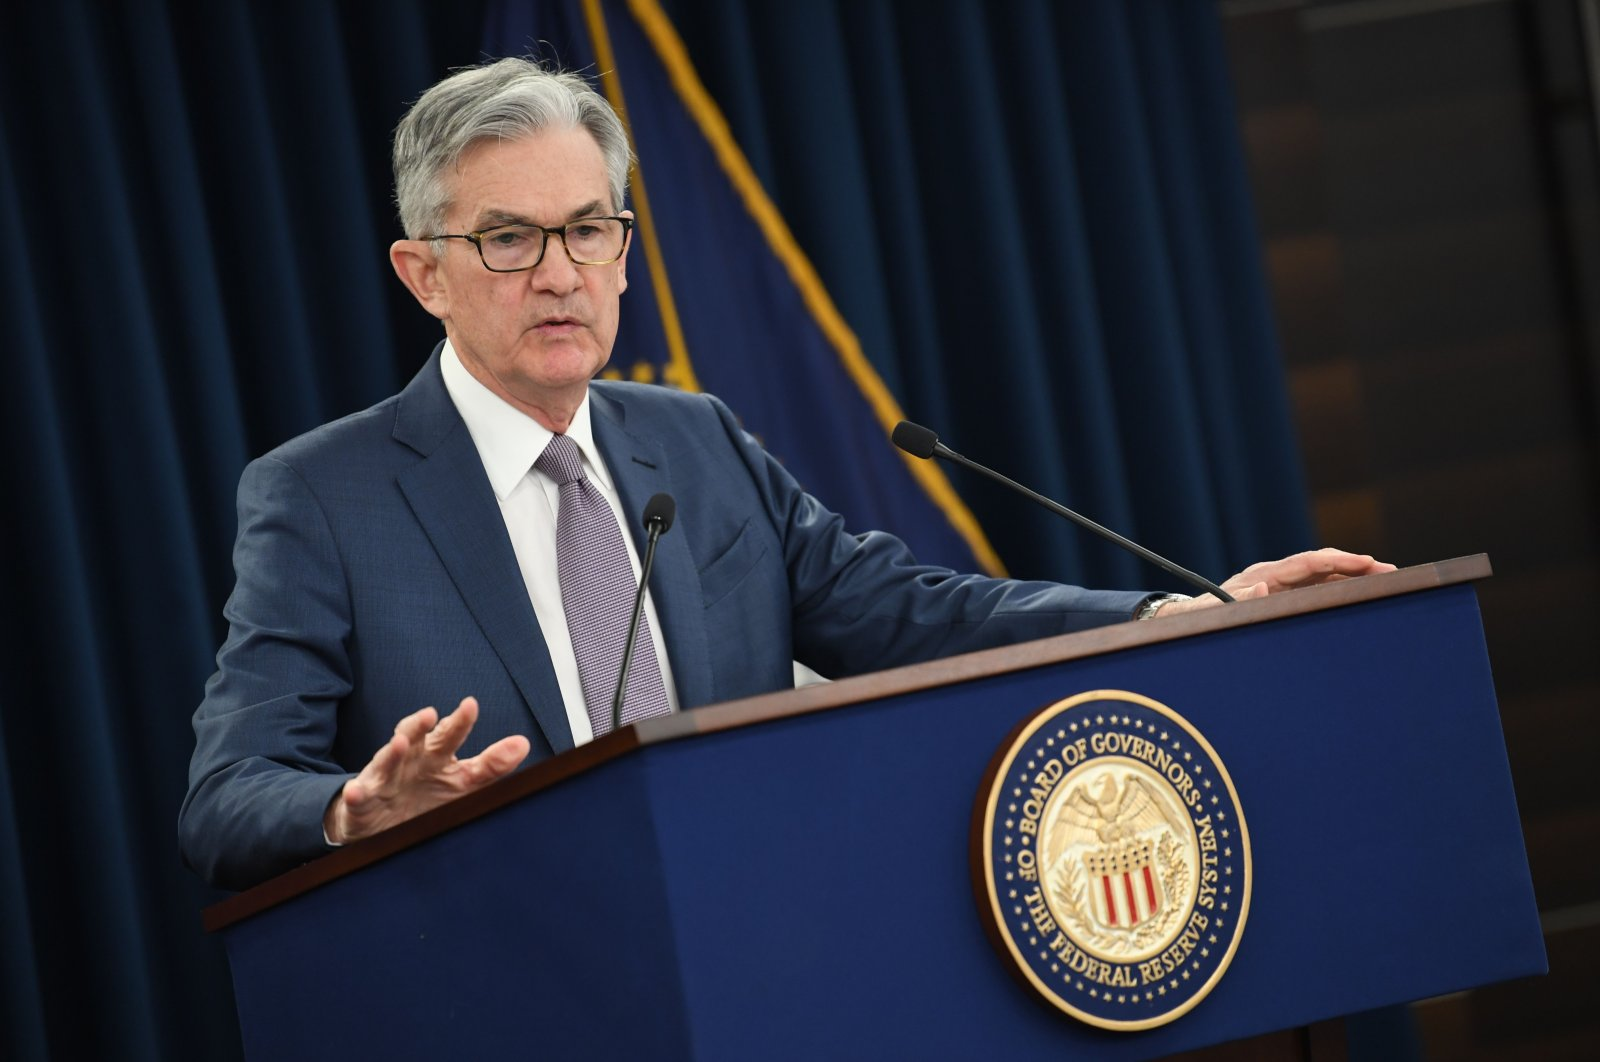 In this file photo taken on March 3, 2020, U.S. Federal Reserve Chairman Jerome Powell gives a news briefing after a surprise announcement that the Fed will cut interest rates, in Washington, D.C. (AFP Photo)